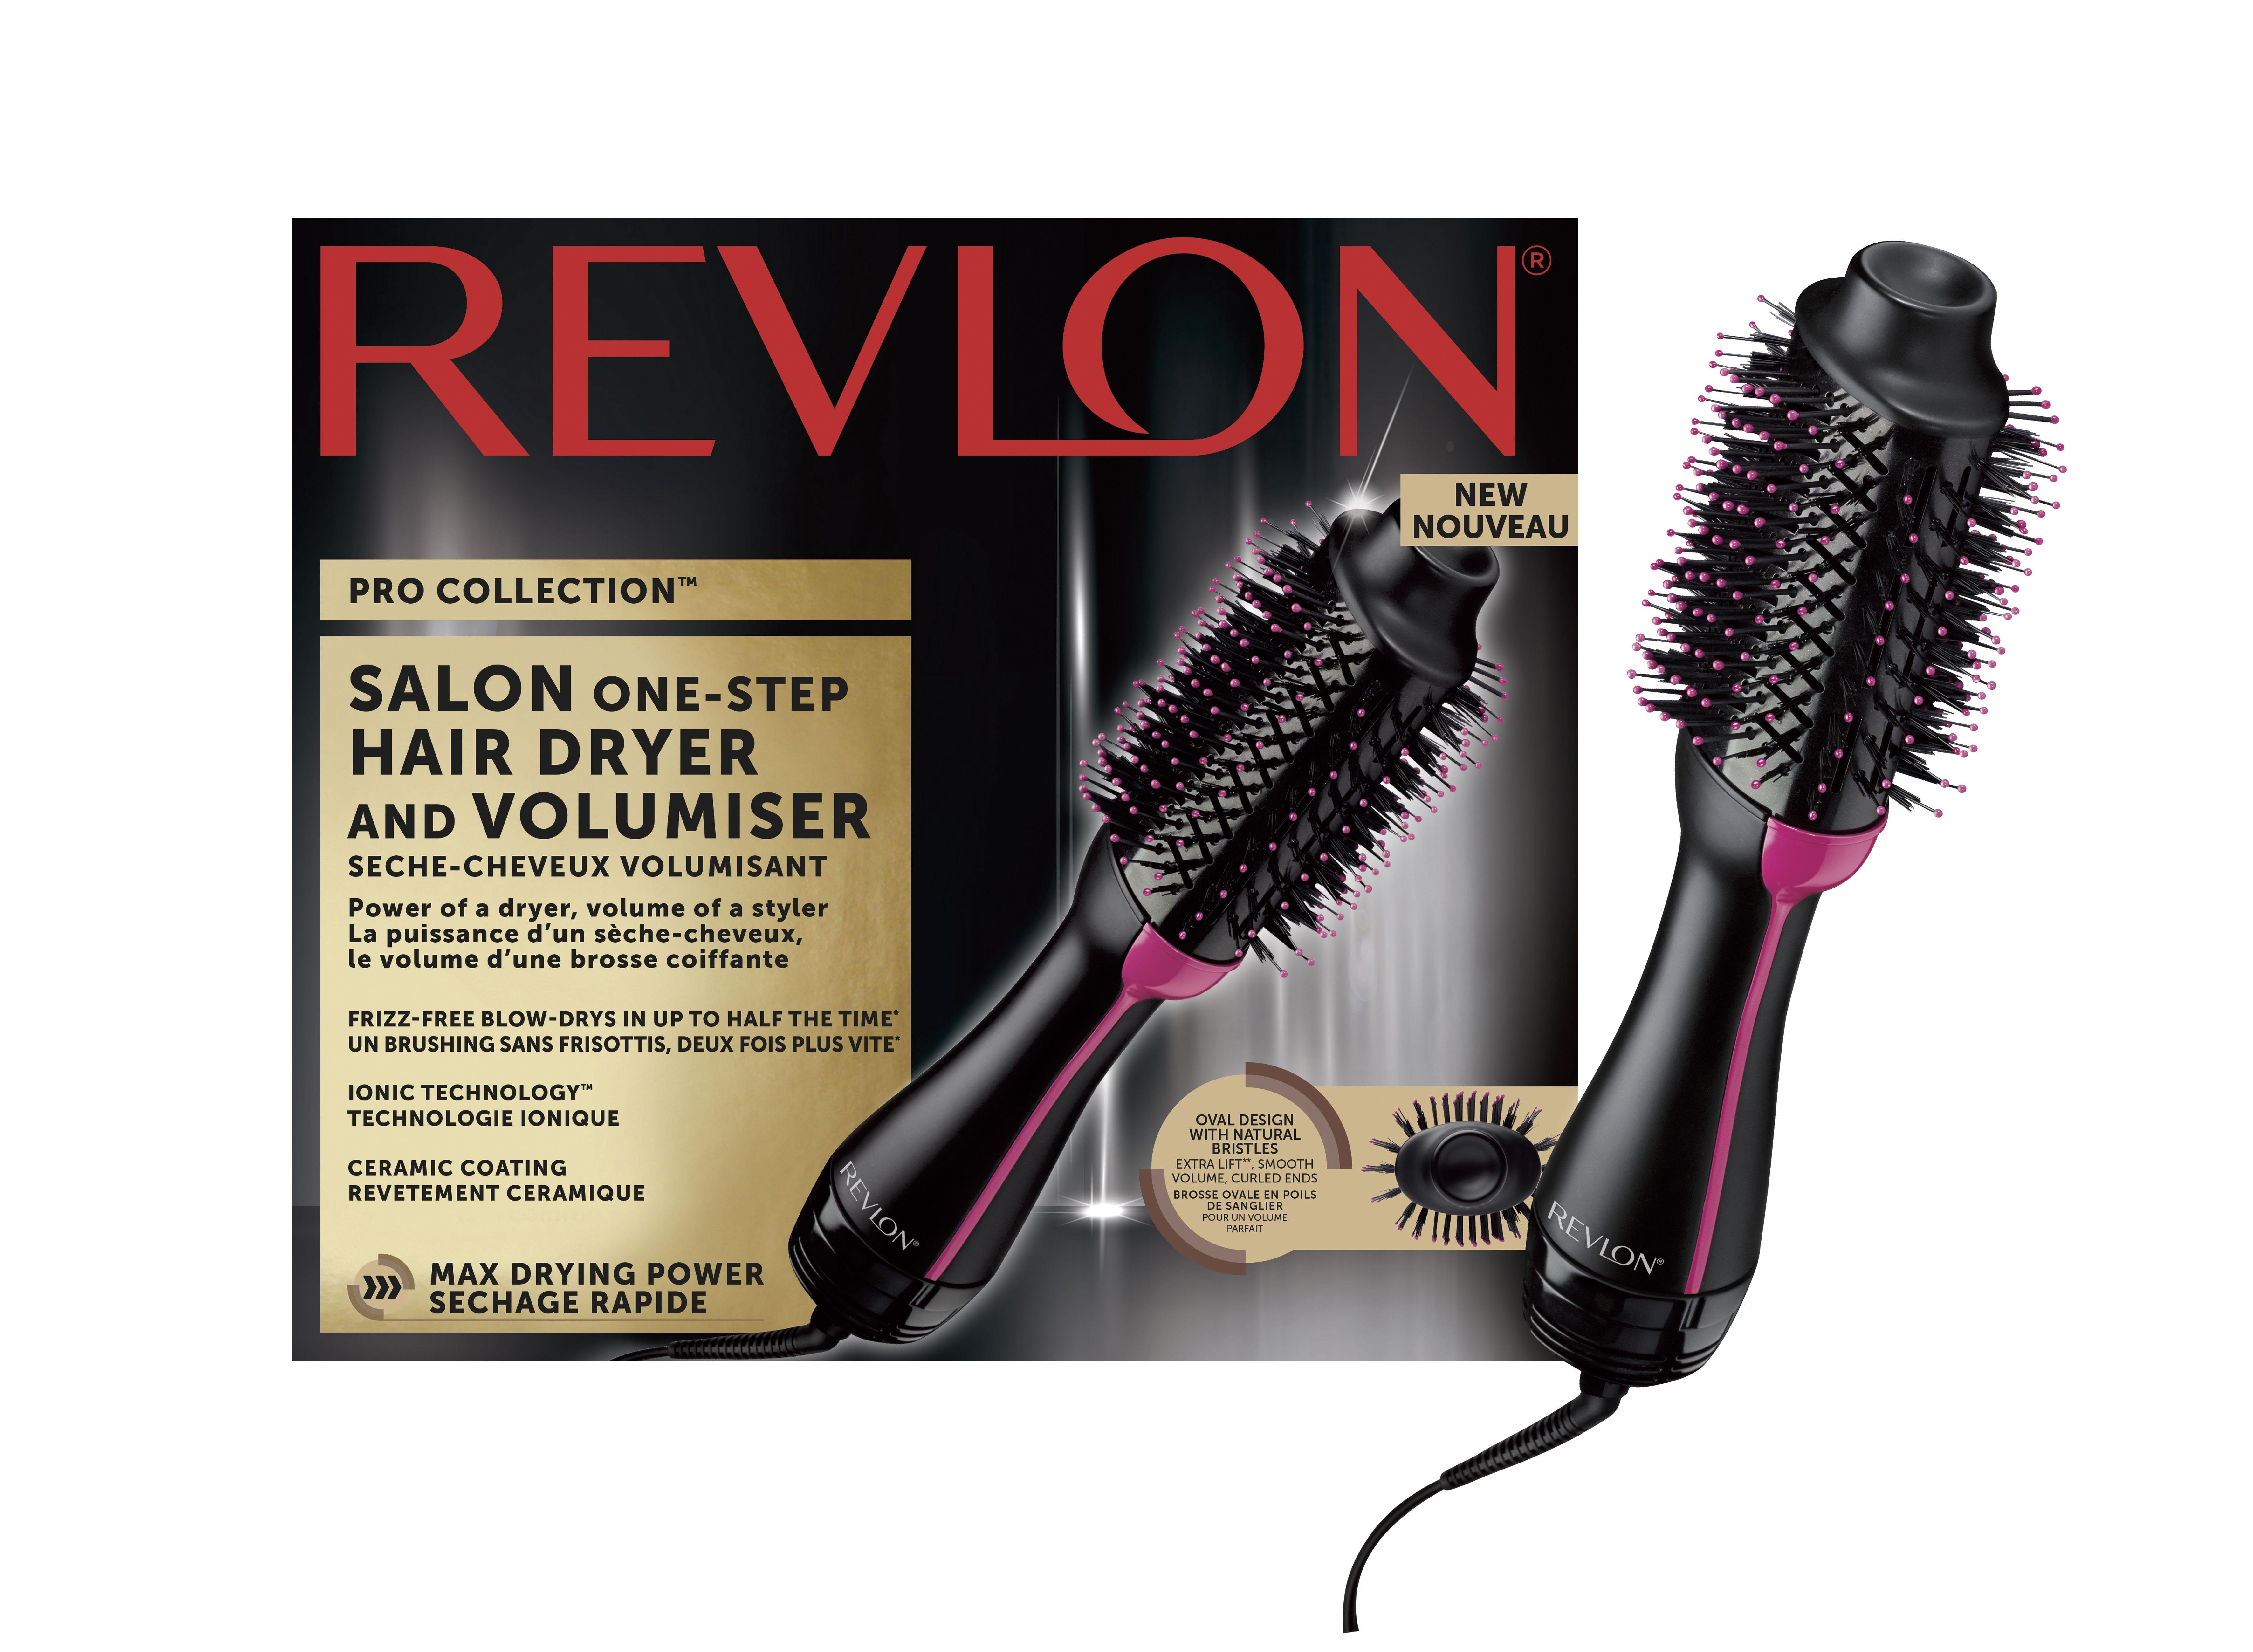 Revlon haardroger & styler RVDR5222E, Salon One-Step Hair Dryer & Volumiser goedkoop op otto.nl kopen